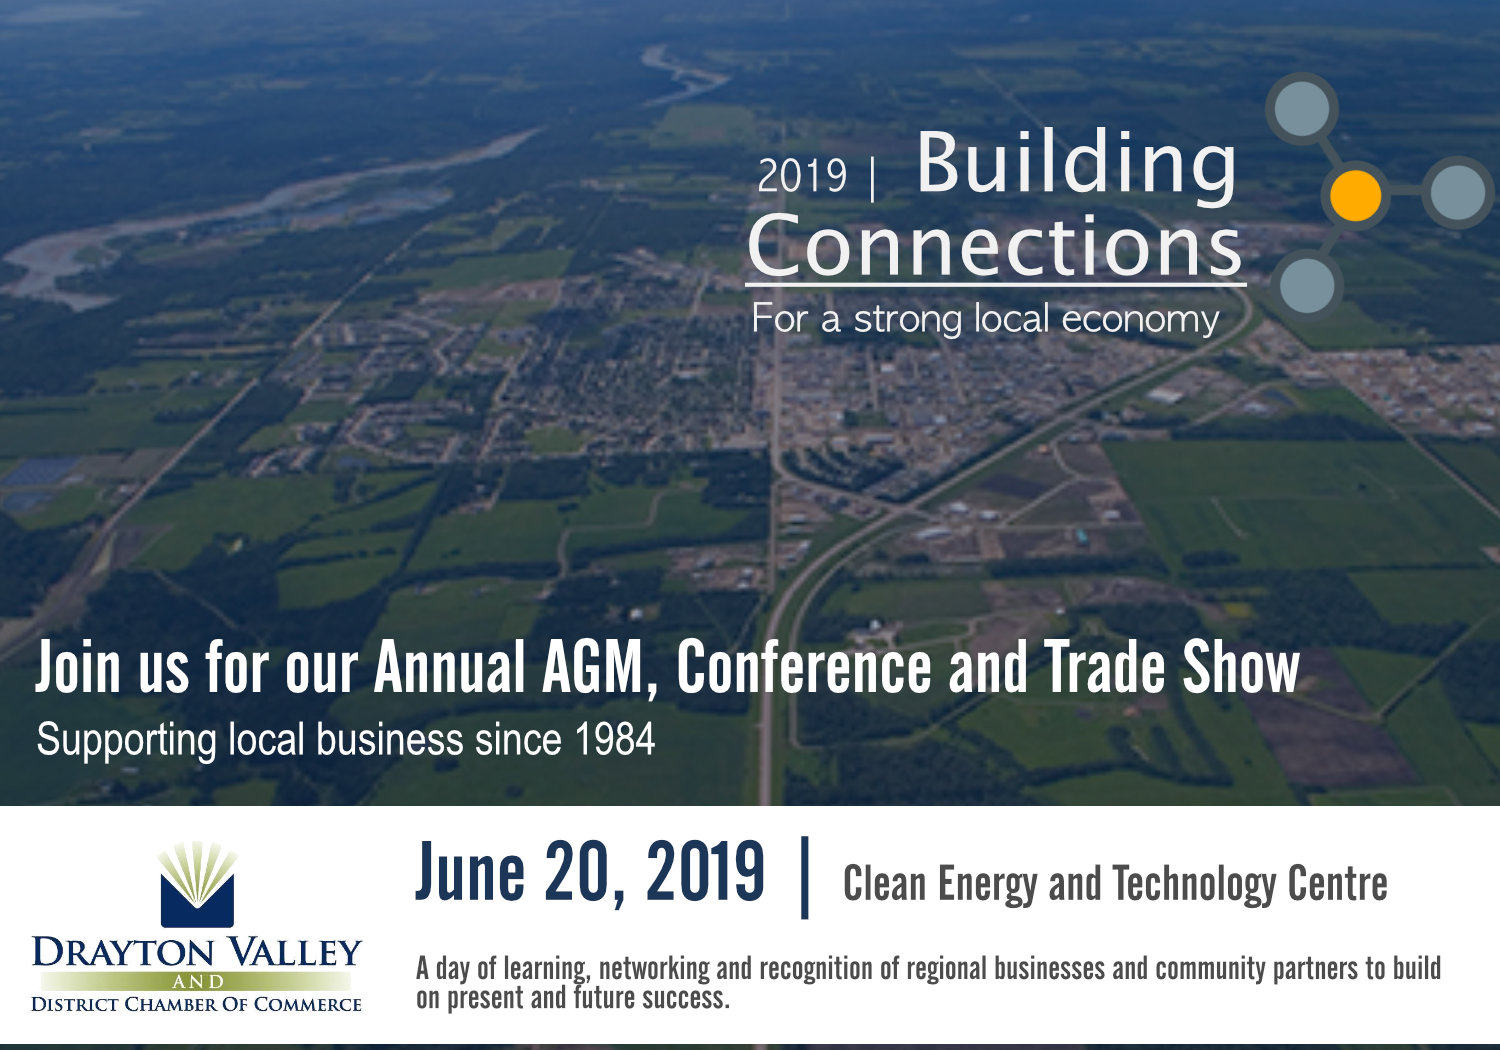 Drayton Valley and District Chamber of Commerce AGM, trade show, conference  and awards banquet - Drayton Valley